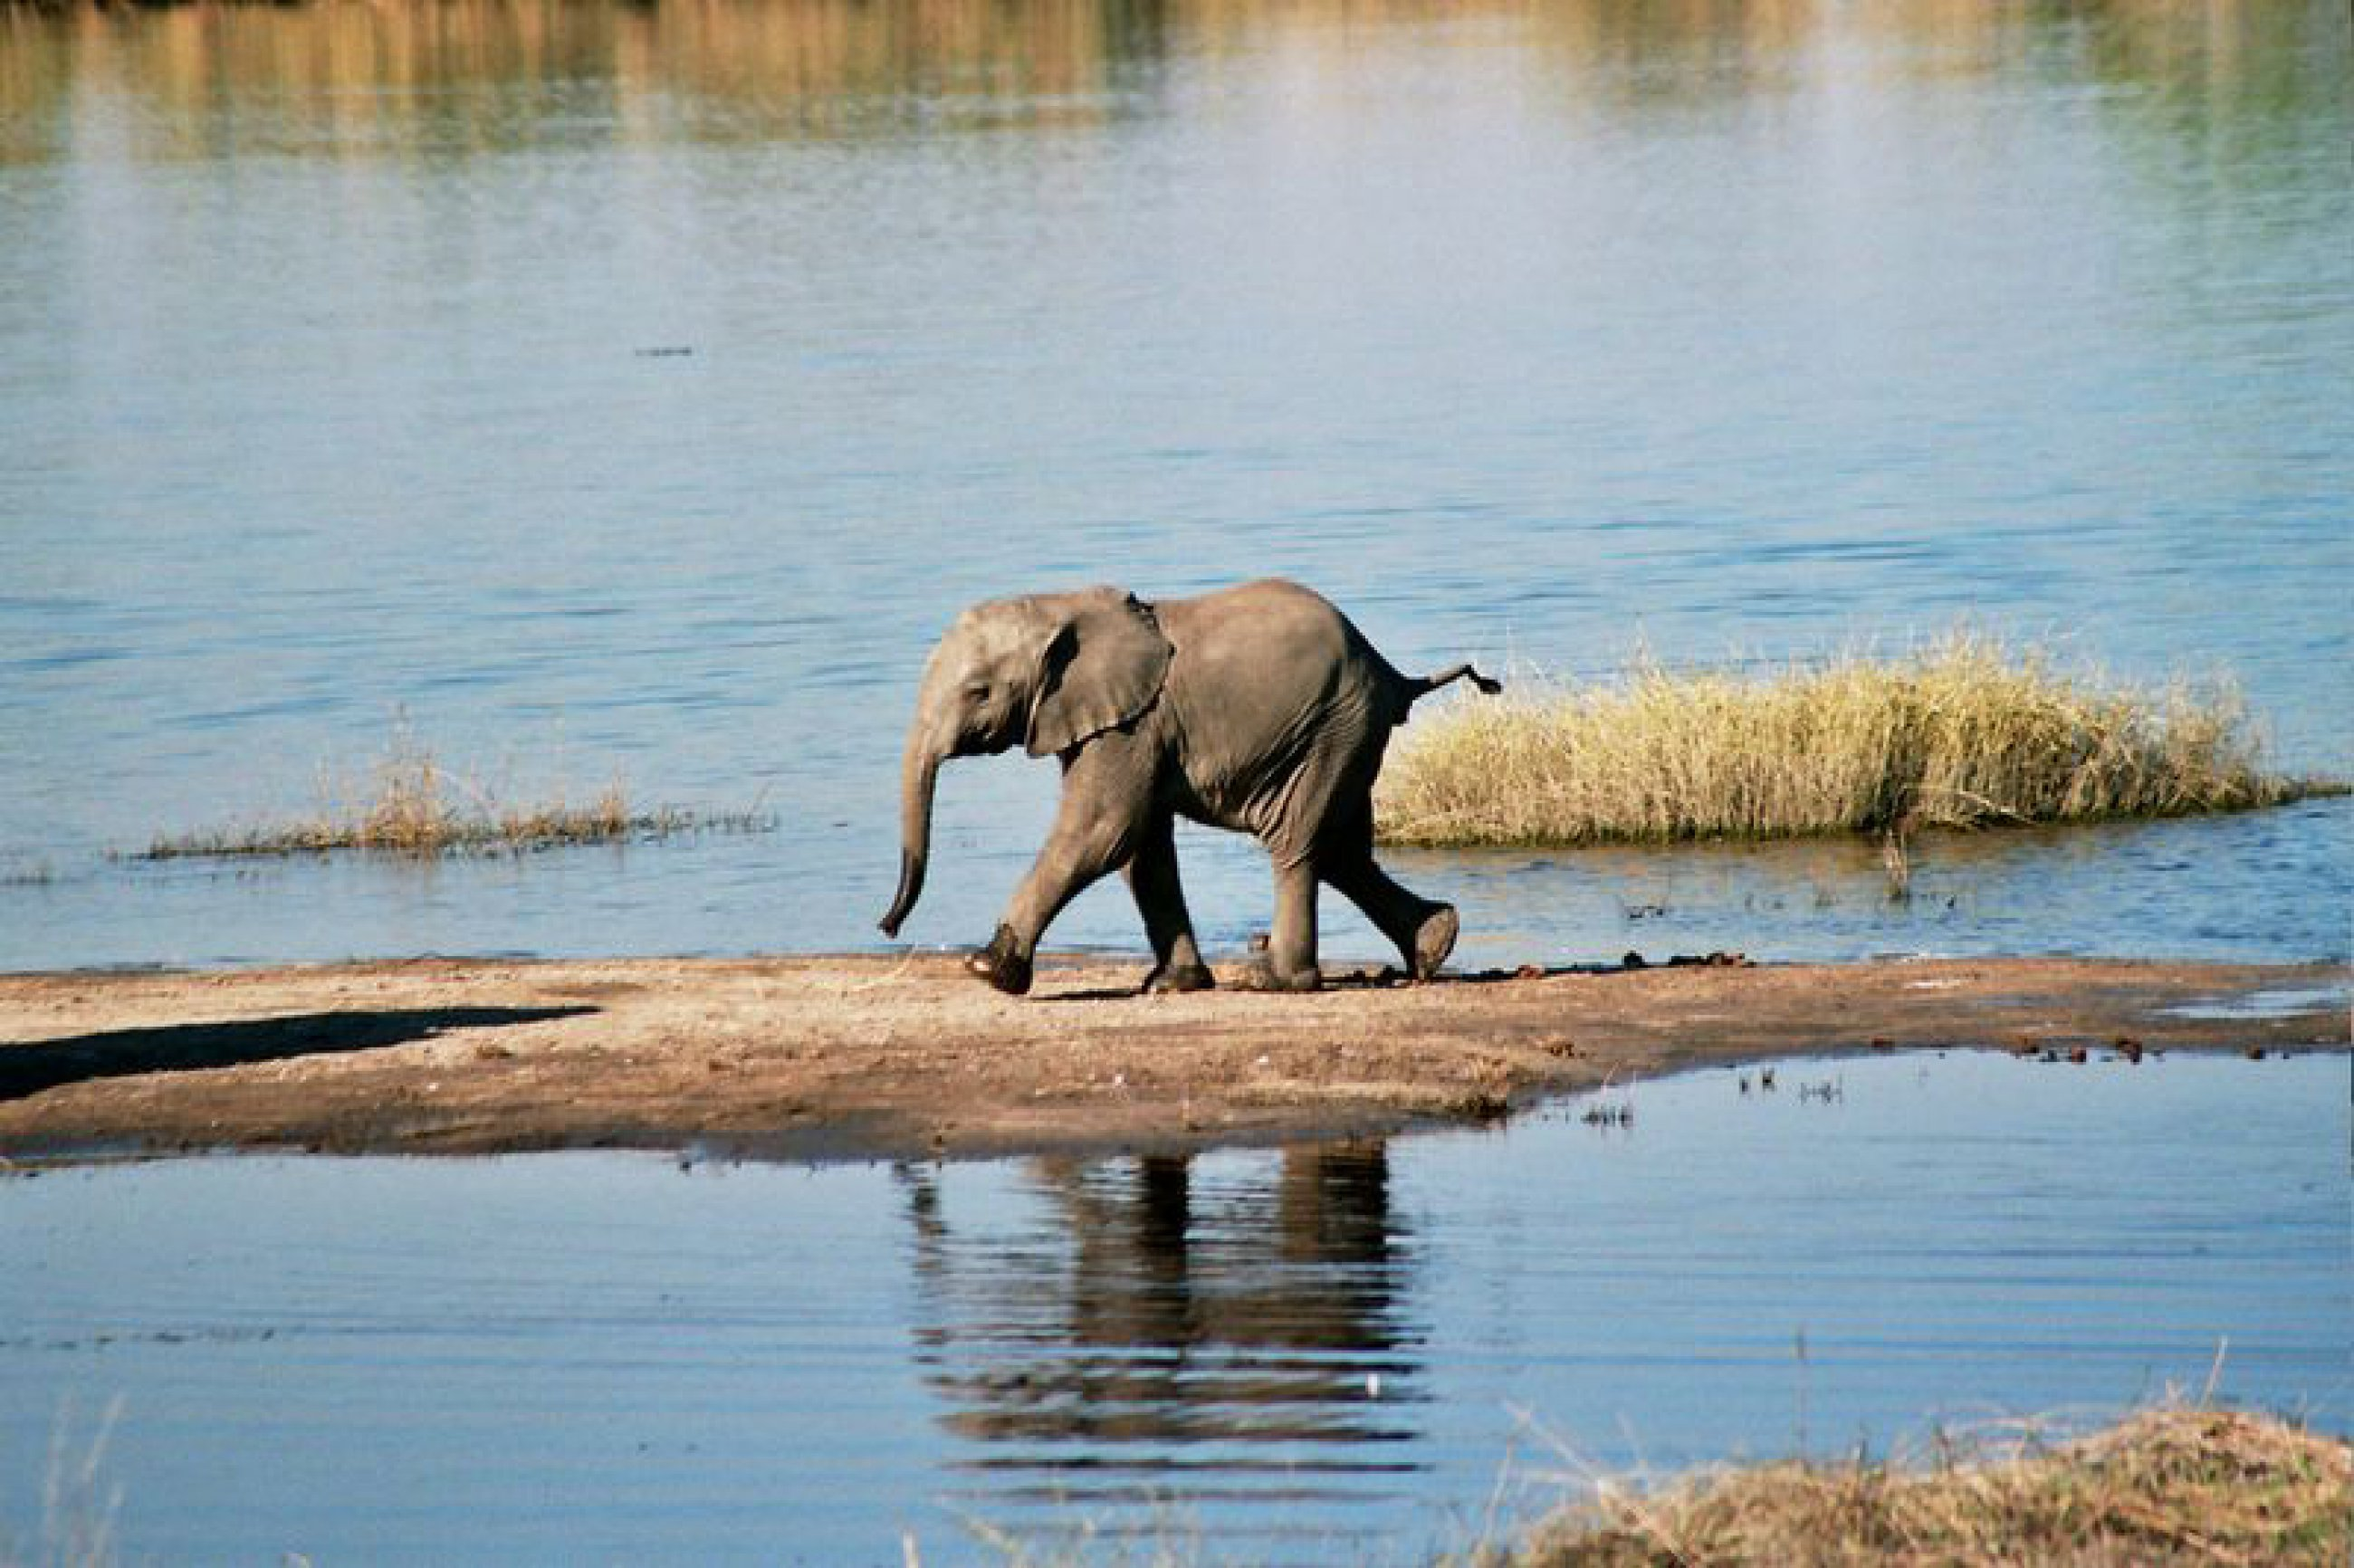 https://bubo.sk/uploads/galleries/16033/ian-708-03-baby-elephant-chobe-river-botswana.jpg